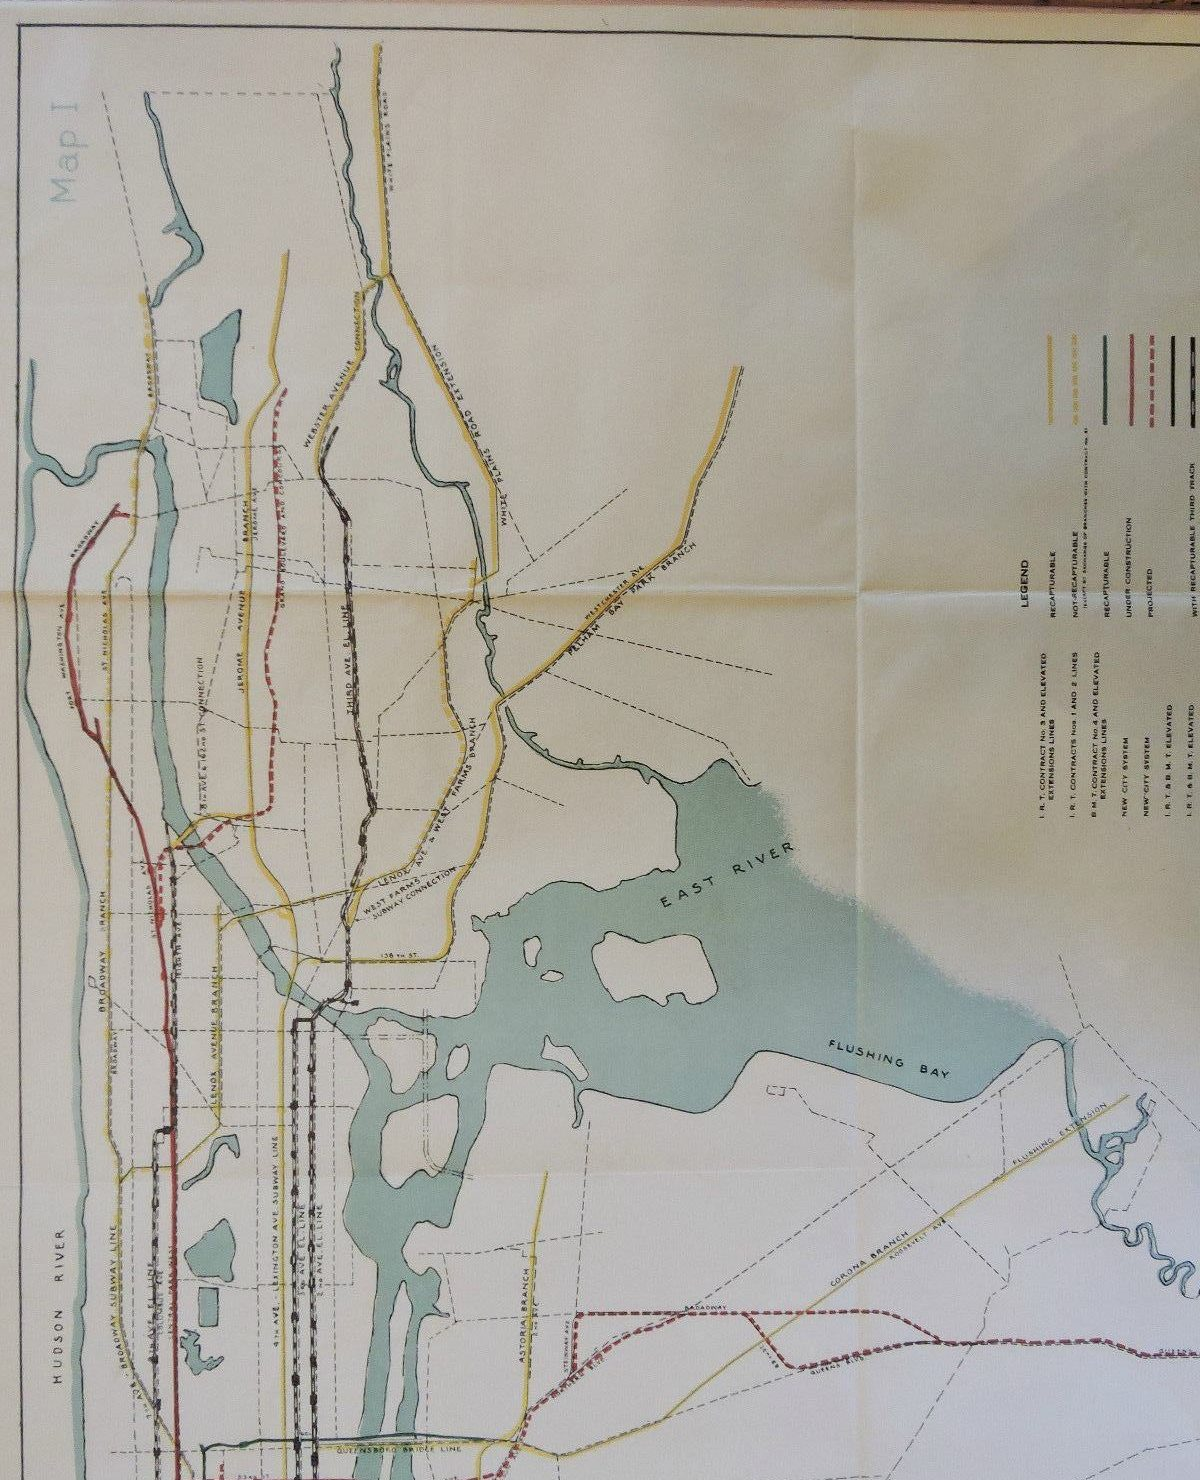 This  City Subway Map Shows Early Transit Plans Sqft - Nyc subway map queens ny